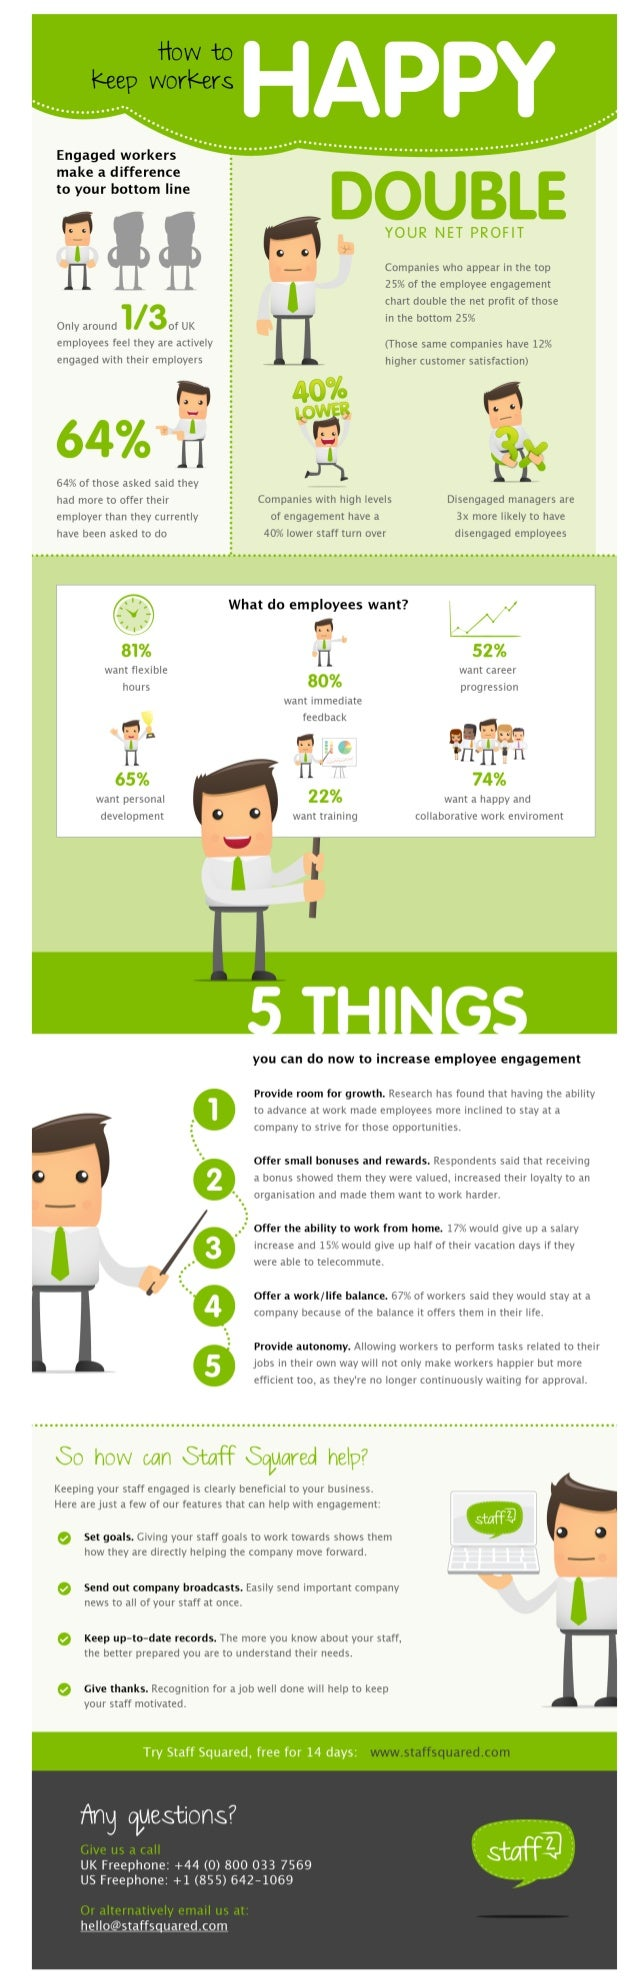 Infographic: Engaged workers increase the profitability of your business